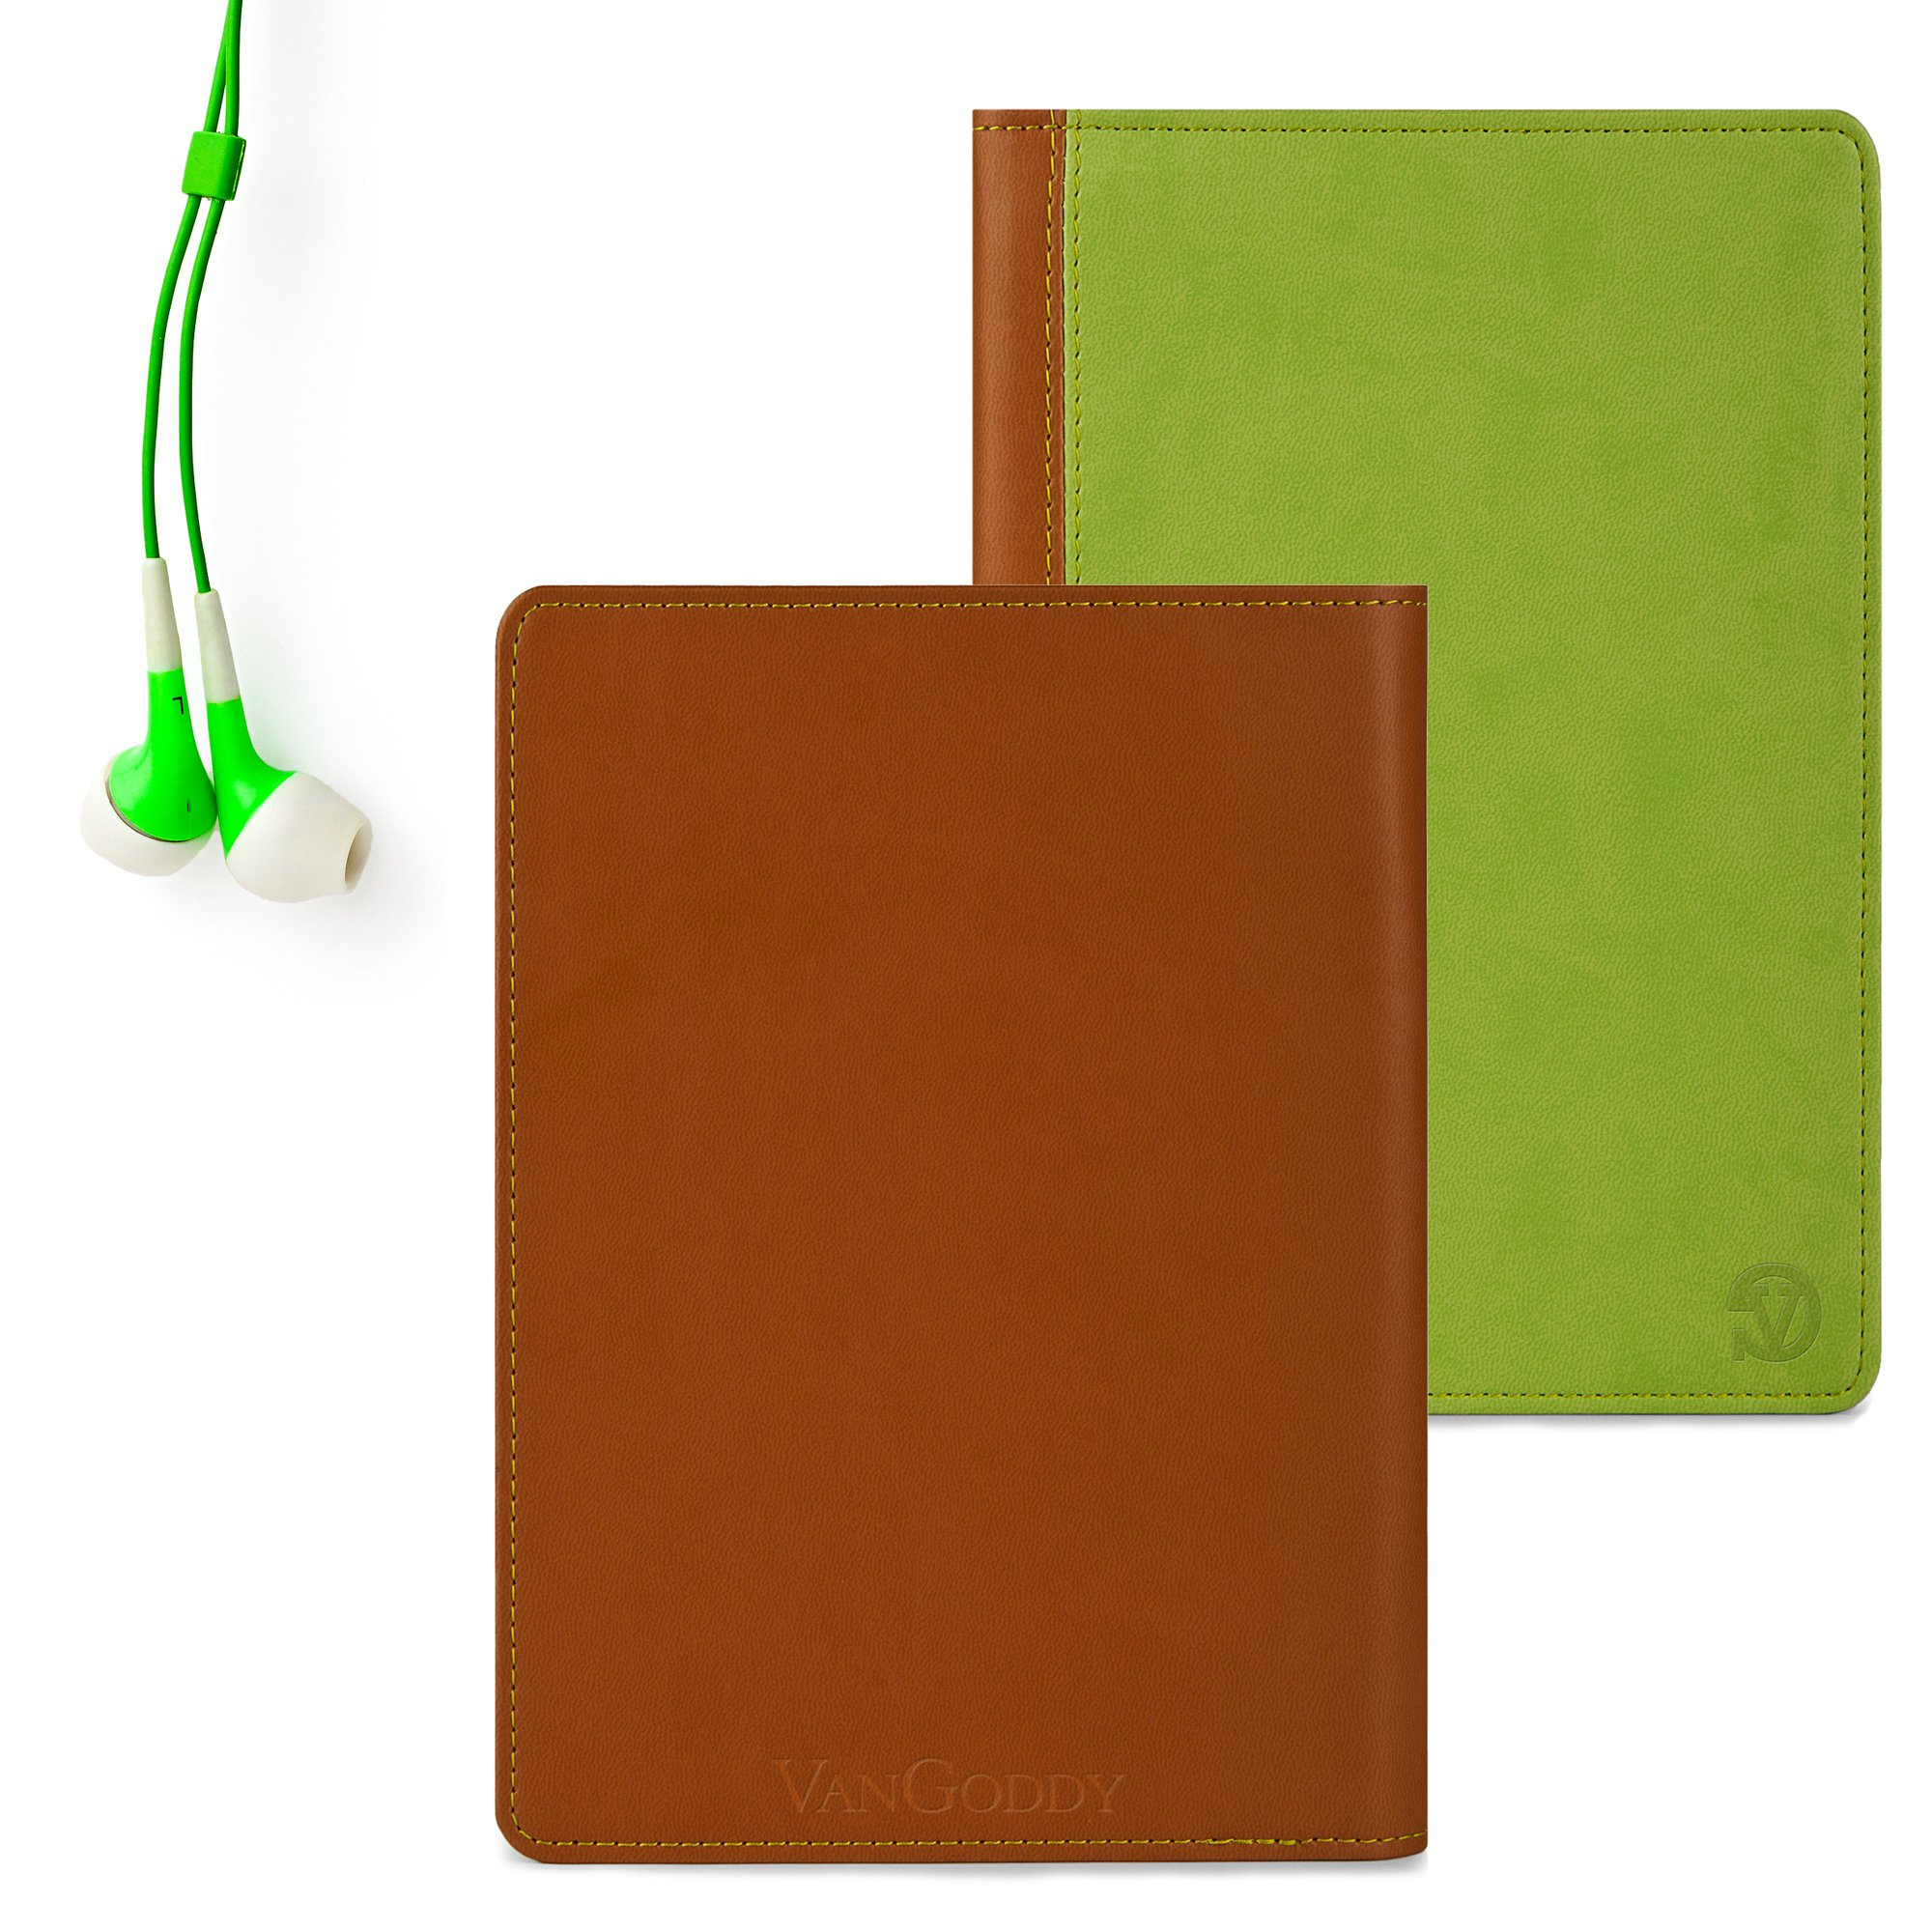 Quality you can feel, Green Vangoddy Brand Mary Collection Leather -ette Portfolio Cover Cases for All Models of the Barnes and Noble Nook HD 7 Inch Tablet (Snow 8 GB, Snow 16 GB, Smoke 8 GB, Smoke 16 GB) + Compatible Nook HD Earbud Earphones